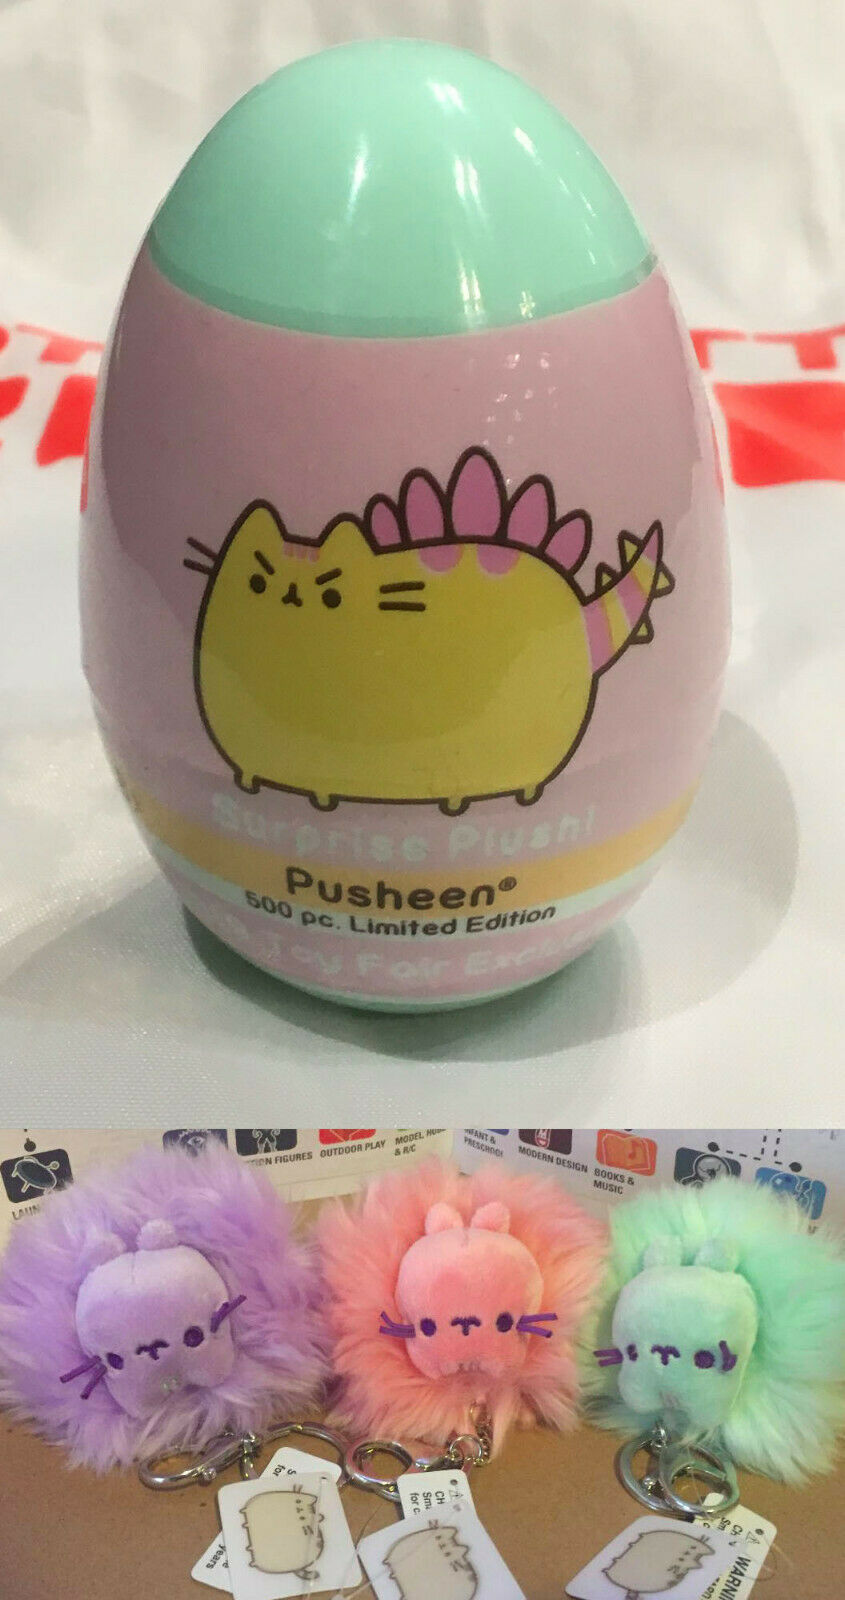 NYC Toy Fair 2019 GUND Pusheen Excl.Surprise Excl.Surprise Mini Plush & 3 Keychain Set & Tote